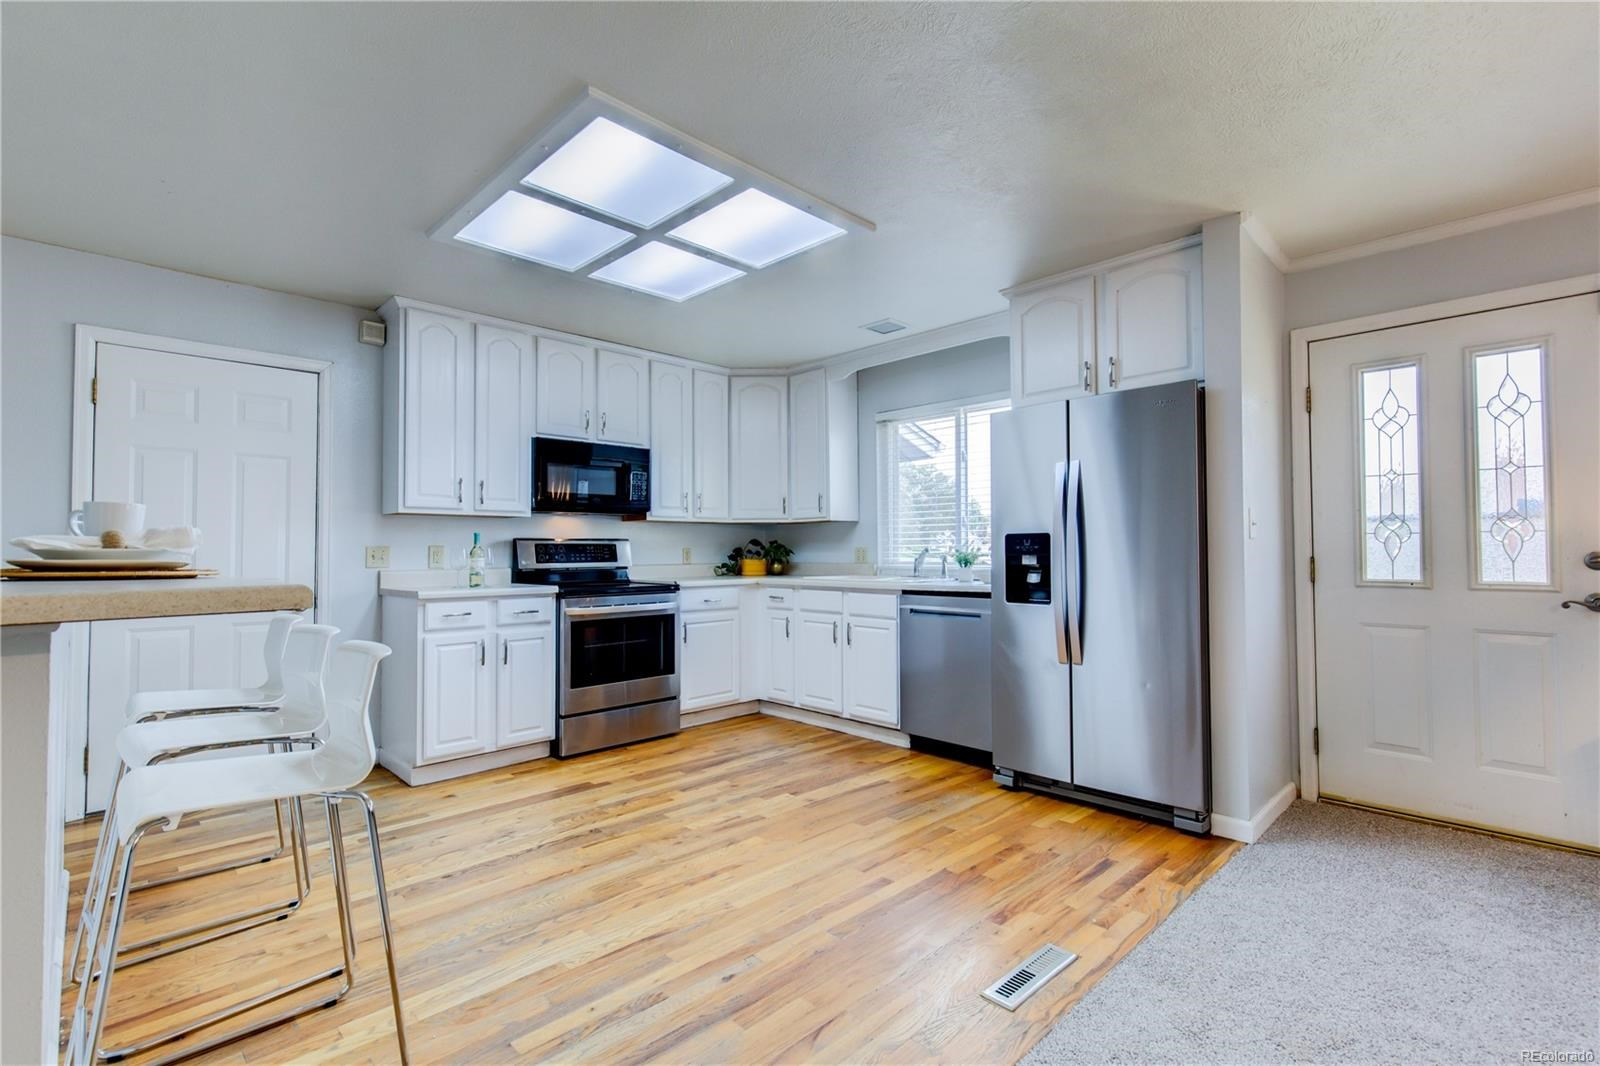 MLS# 5137325 - 5 - 6156 W 75th Place, Arvada, CO 80003